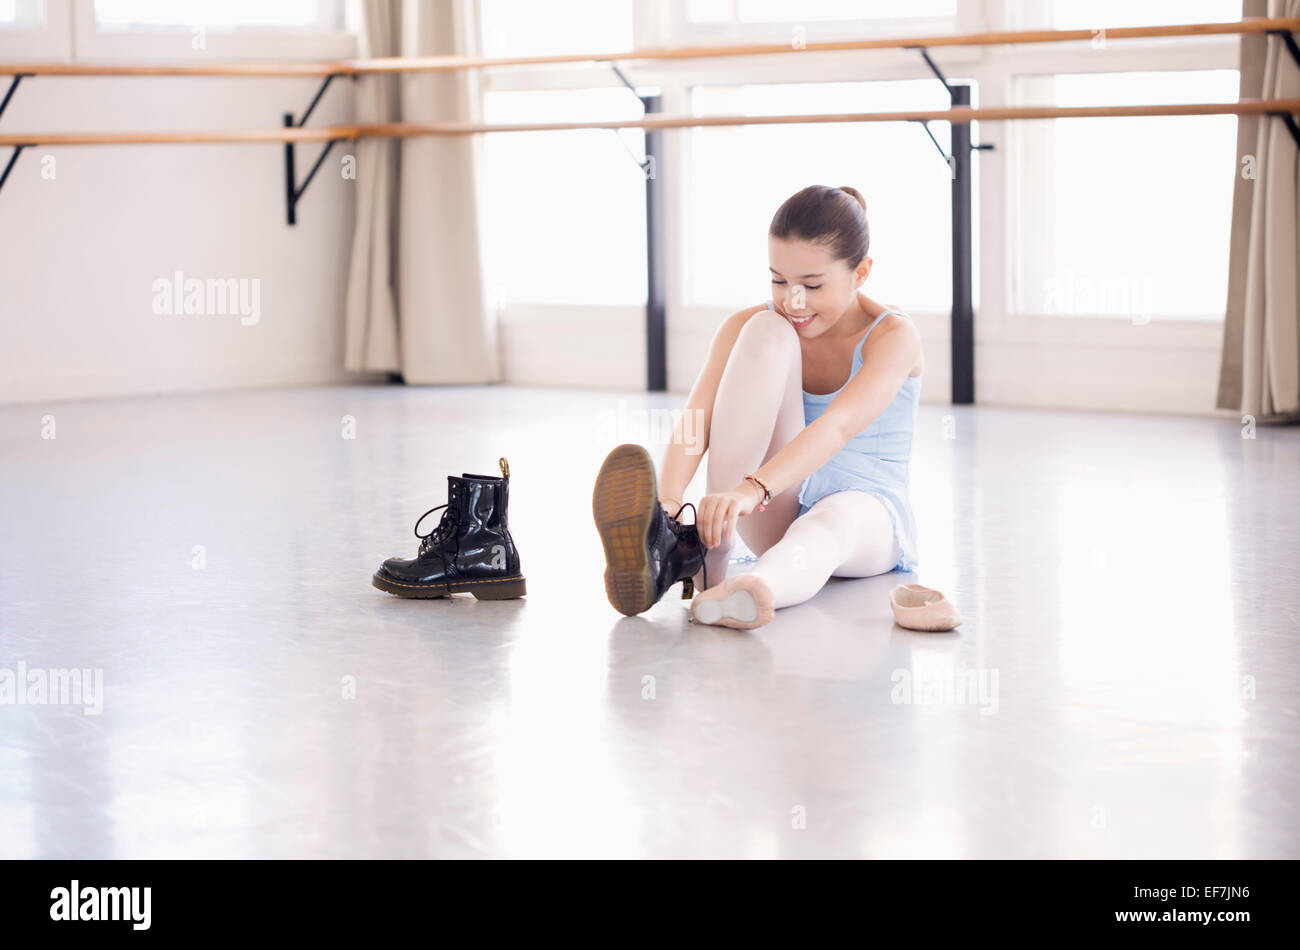 Girl putting on shoe in health club - Stock Image